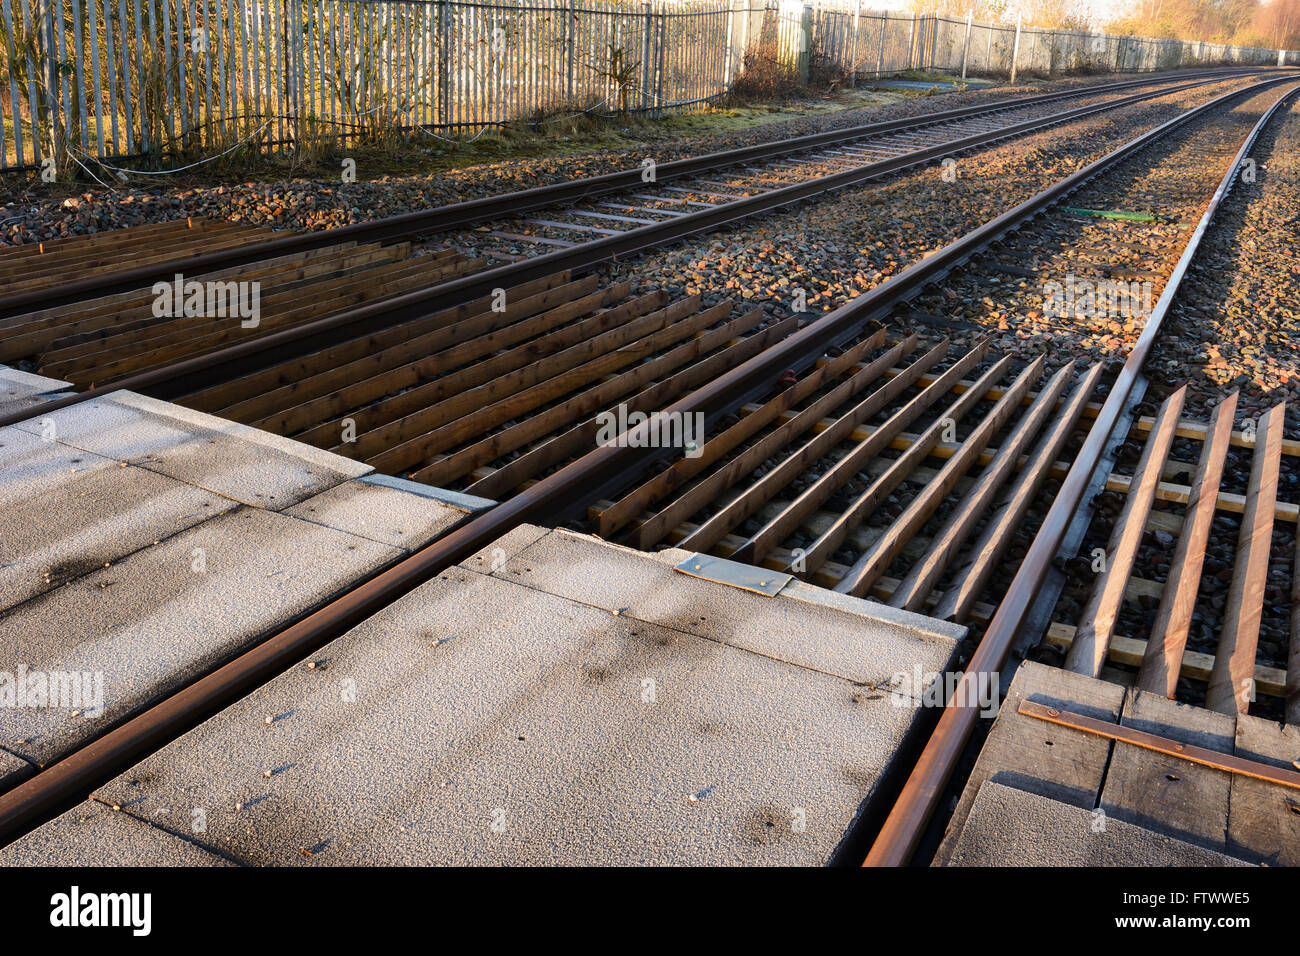 Level crossing and railway lines in early morning light. - Stock Image